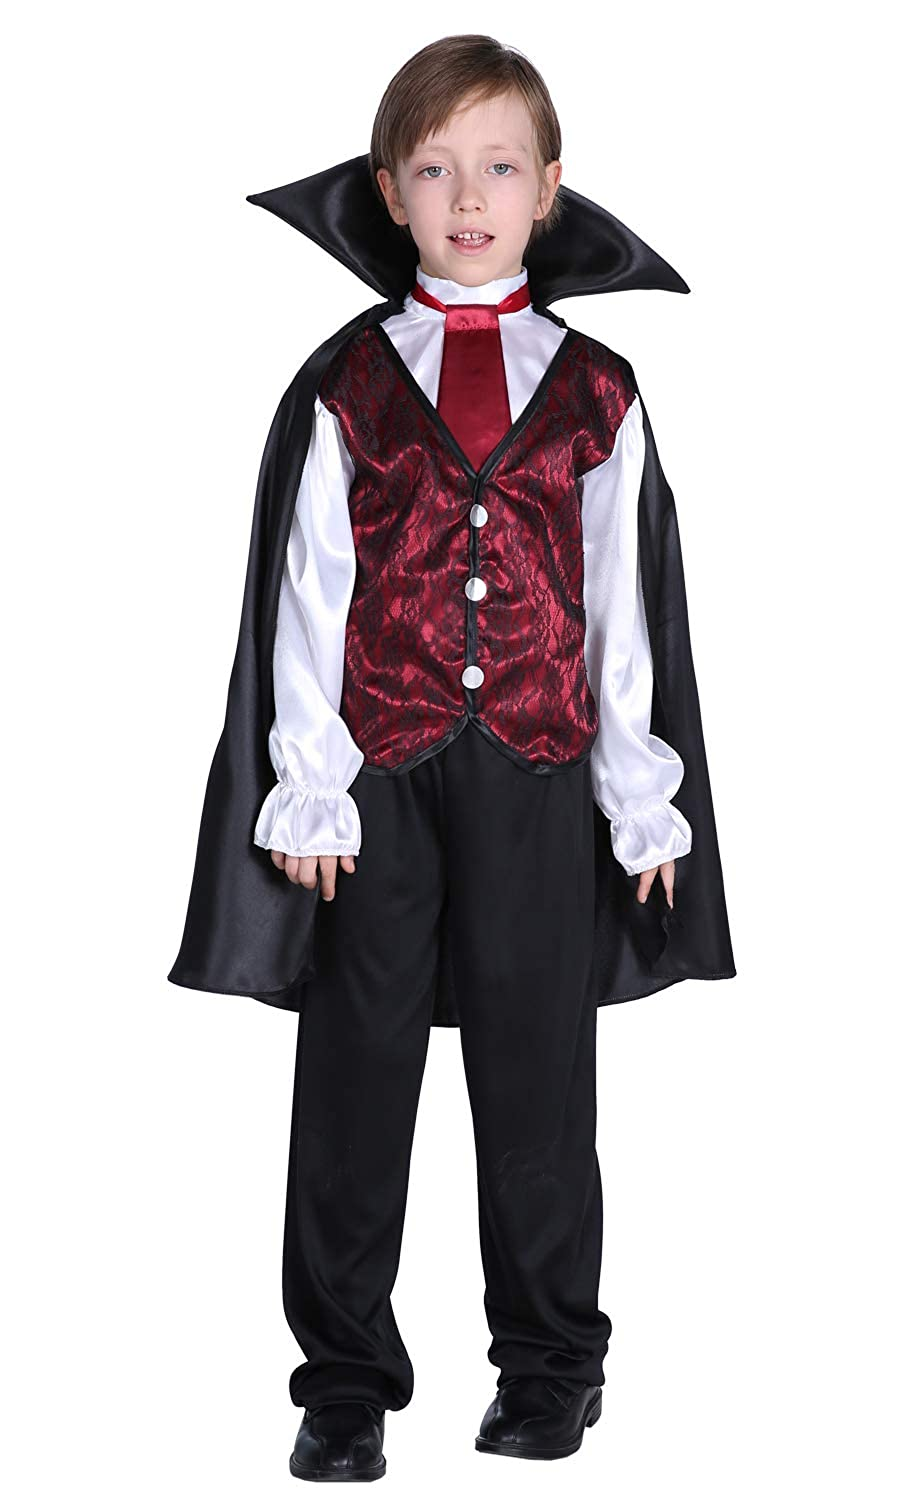 Halloween Costumes For Kids Boys 10 And Up.Amazon Com Lolanta Children S Vampire Costumes For